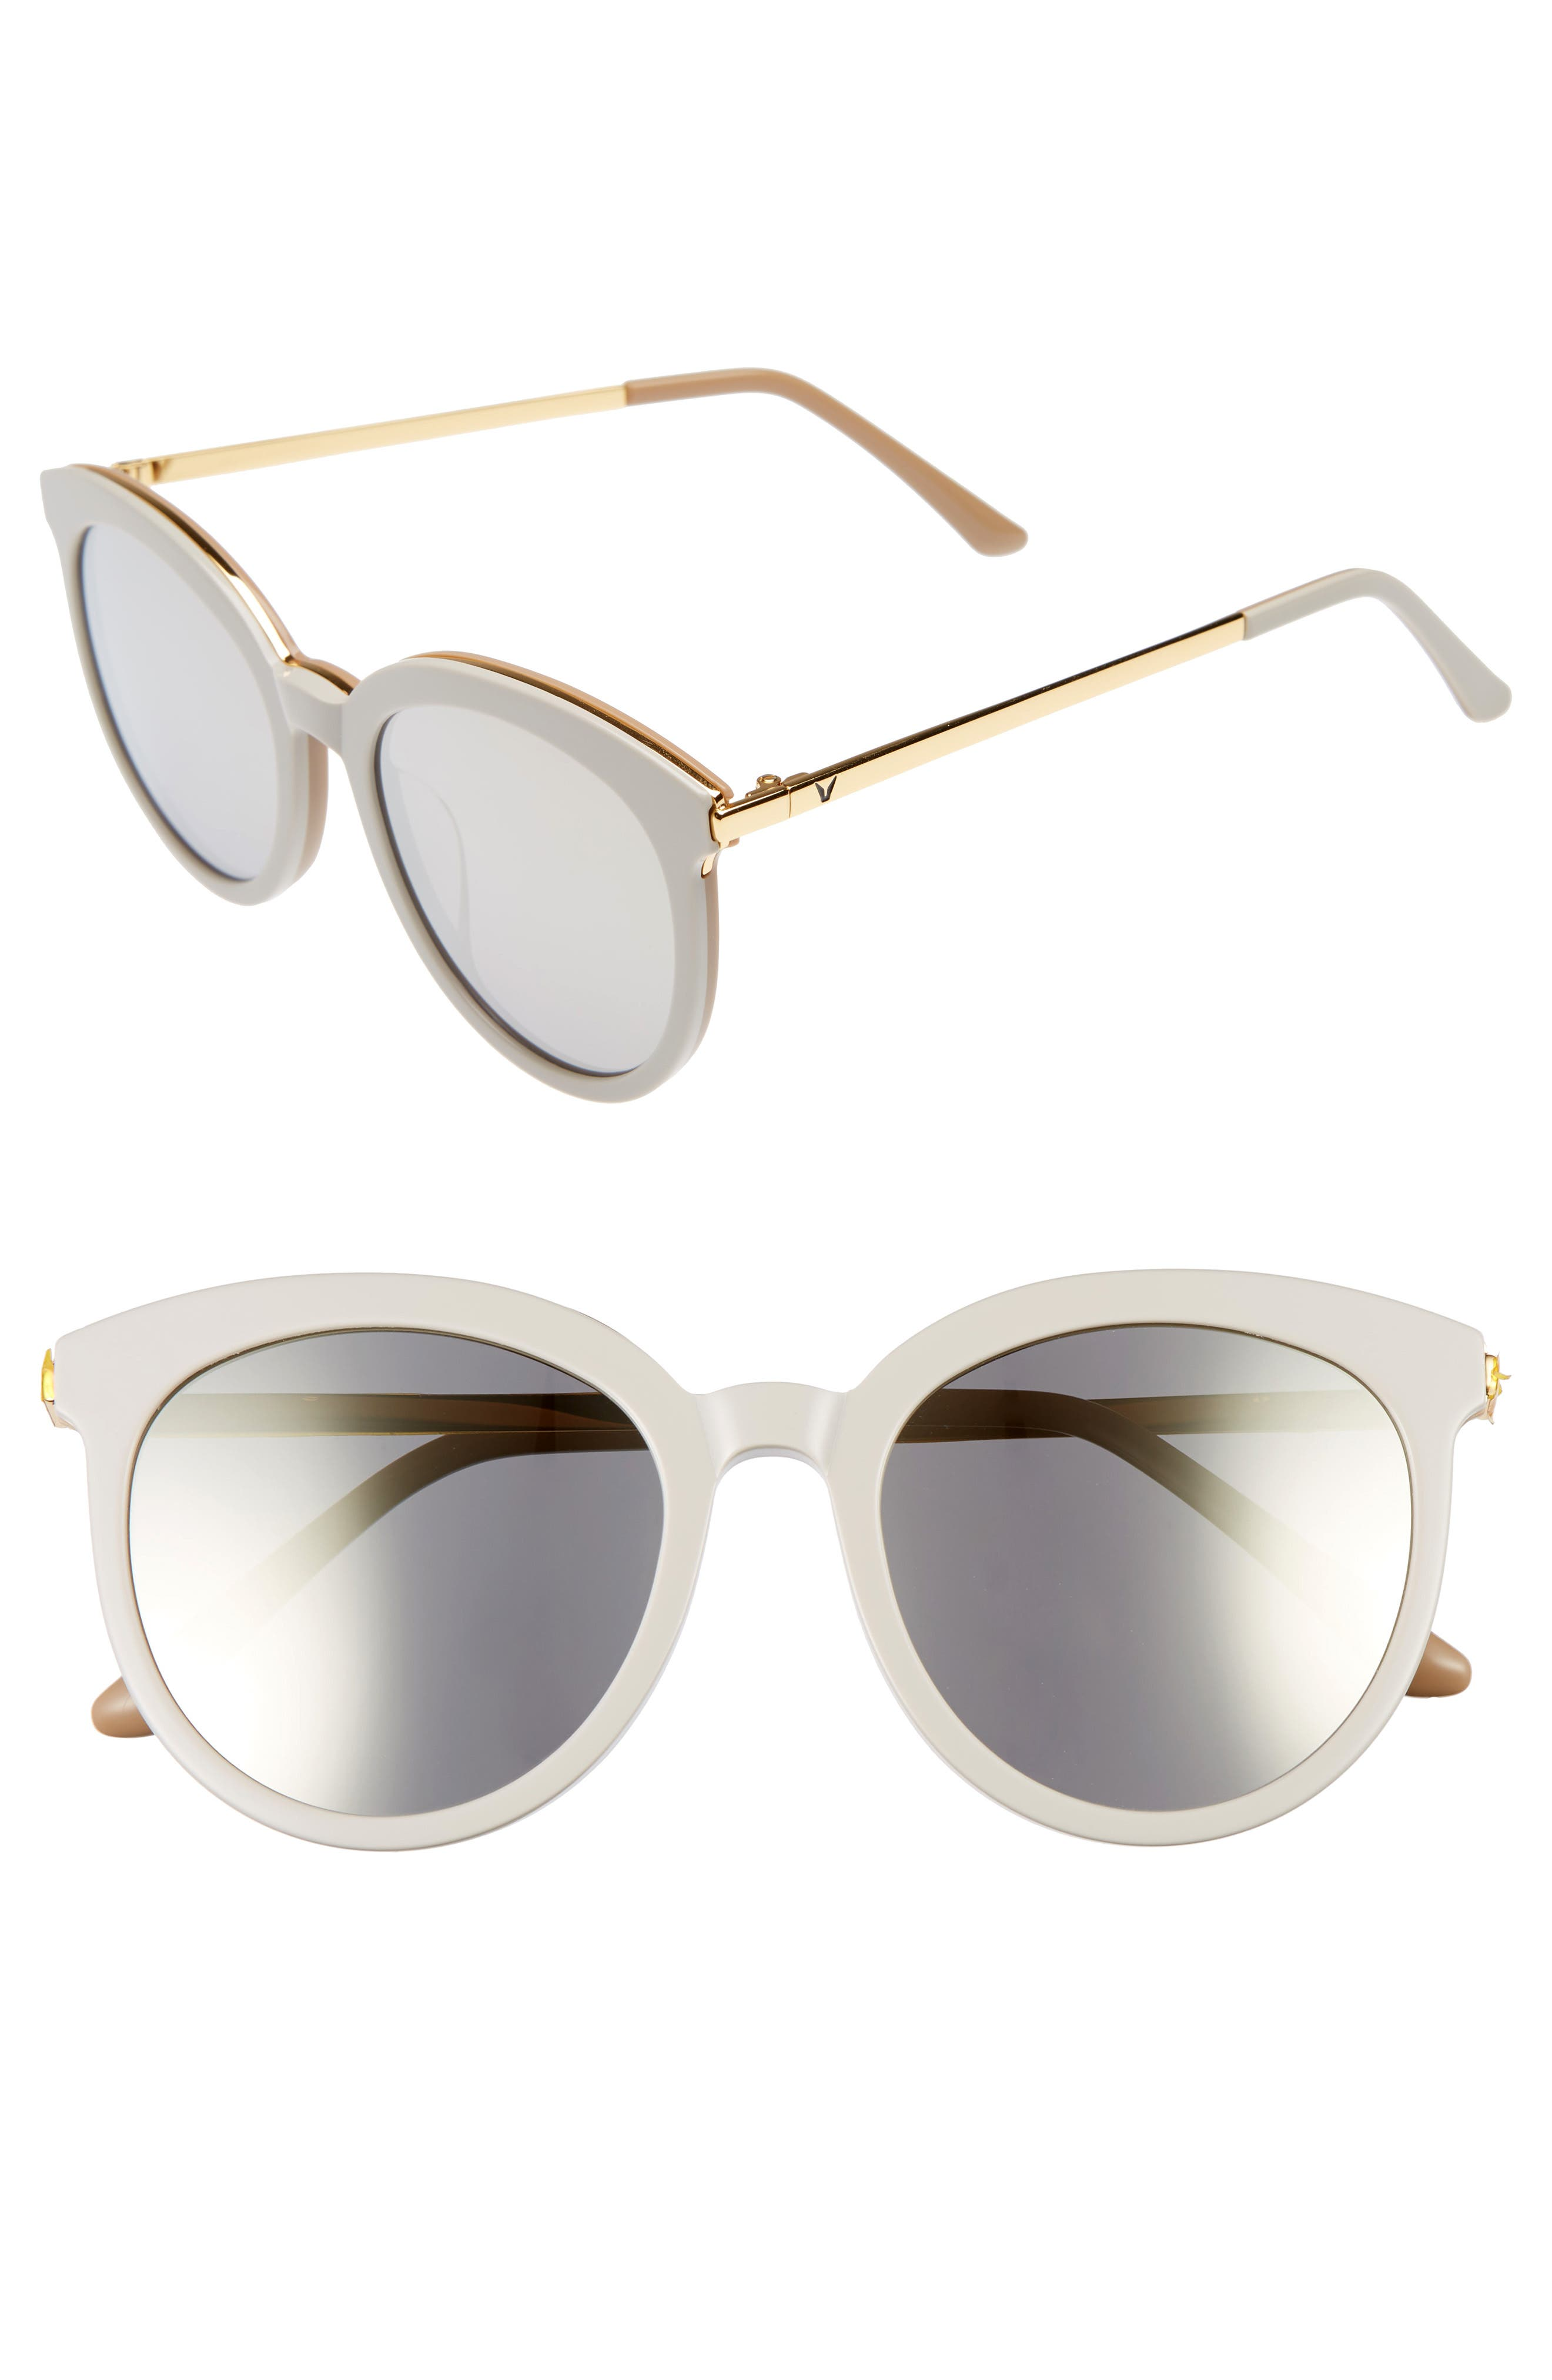 Vanilla Road 54mm Rounded Sunglasses,                         Main,                         color, 020